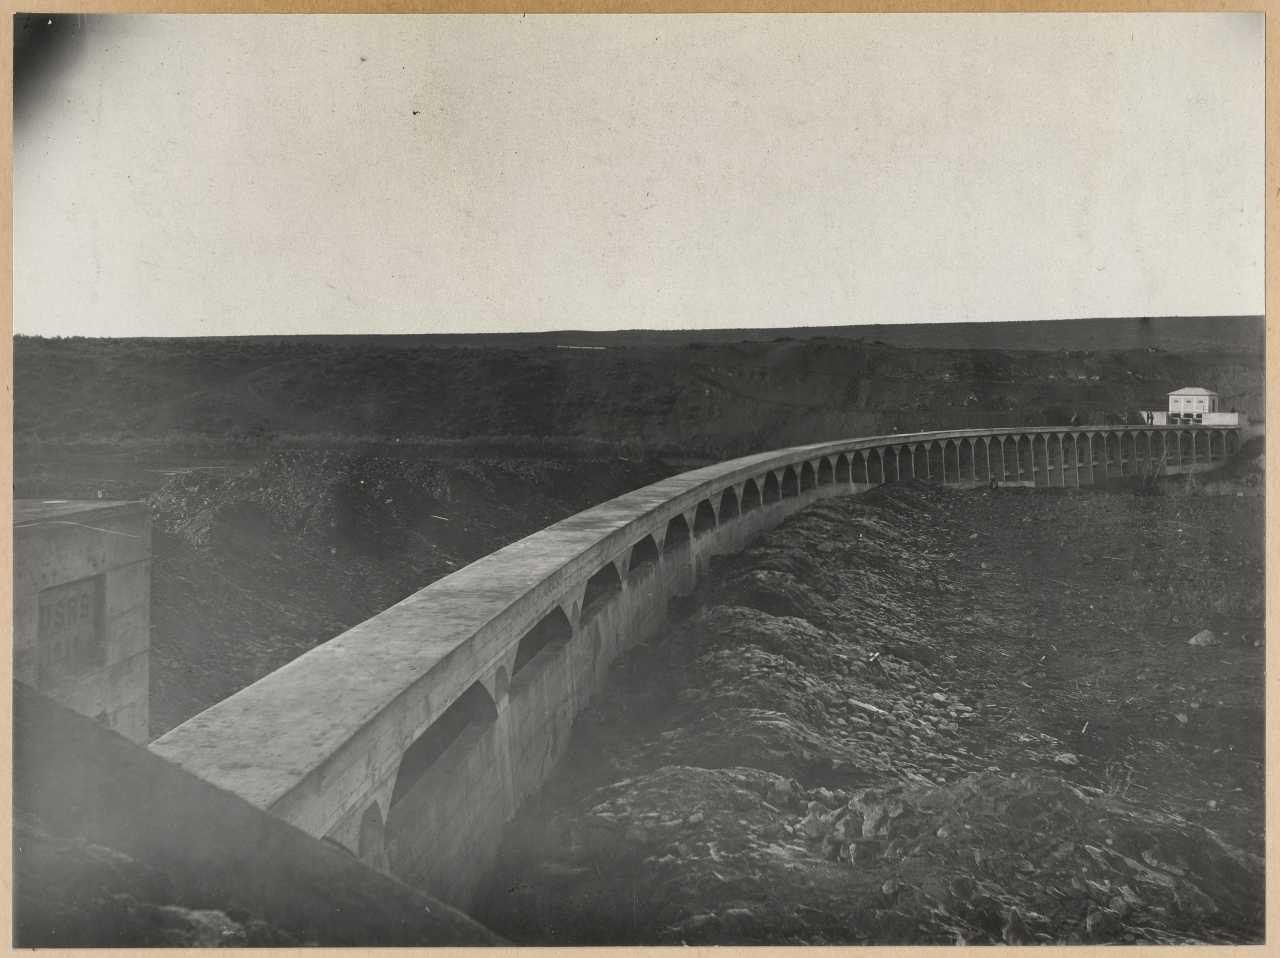 486-Three Miles Diversion Dam. View similar to 485, but taken from the opposite end of the dam.